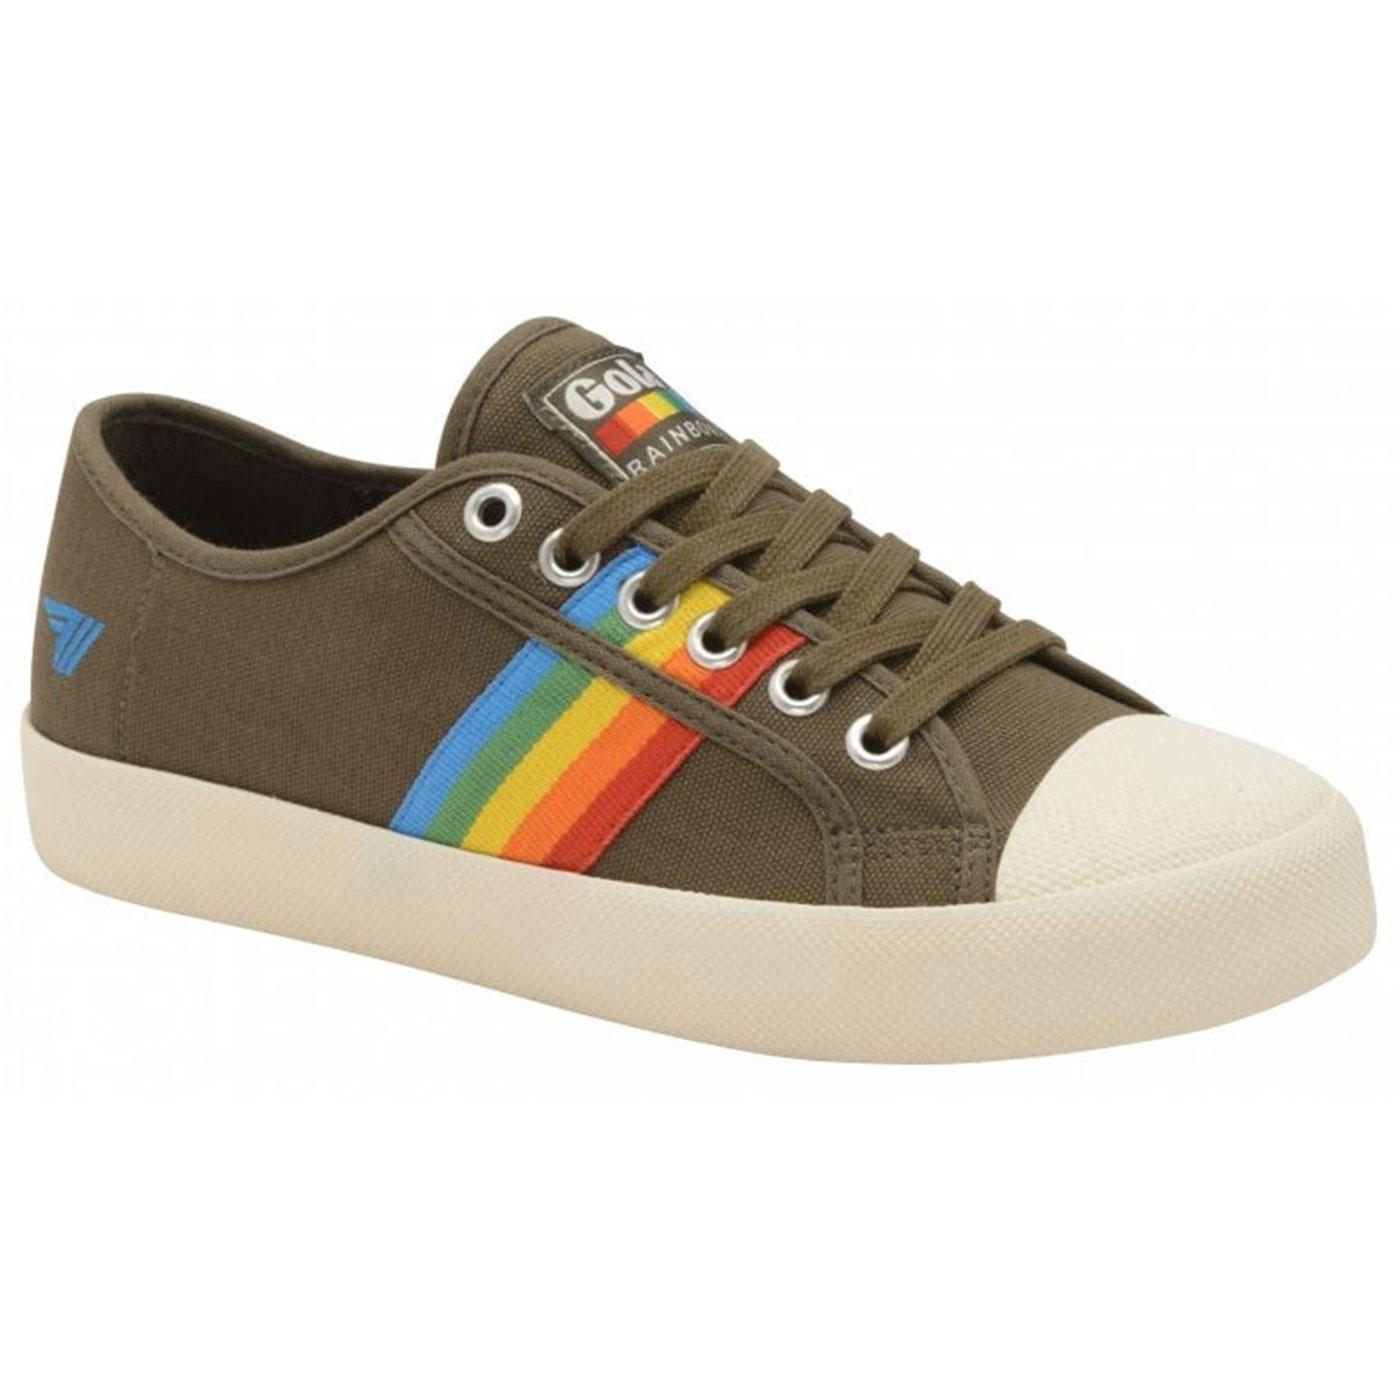 Coaster Rainbow GOLA Retro 90s Canvas Trainers (K)